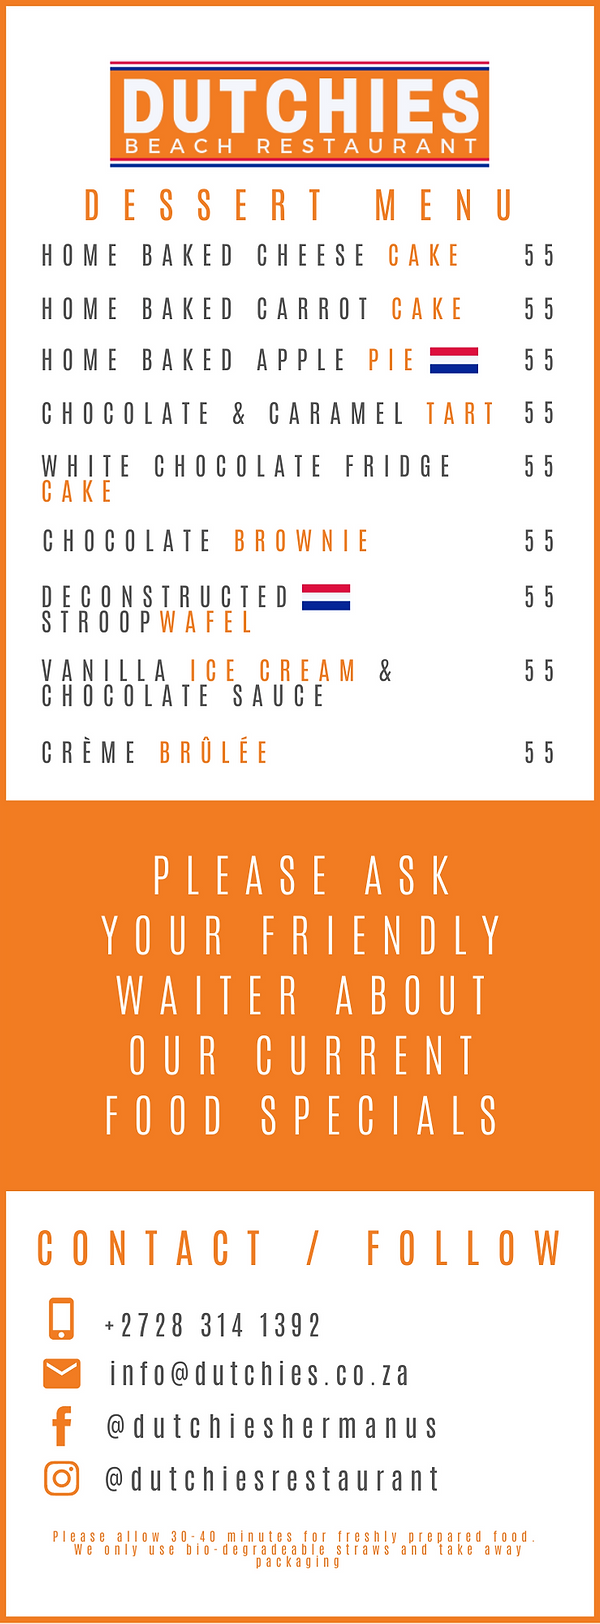 DUTCHIES FOOD MENU (5).png